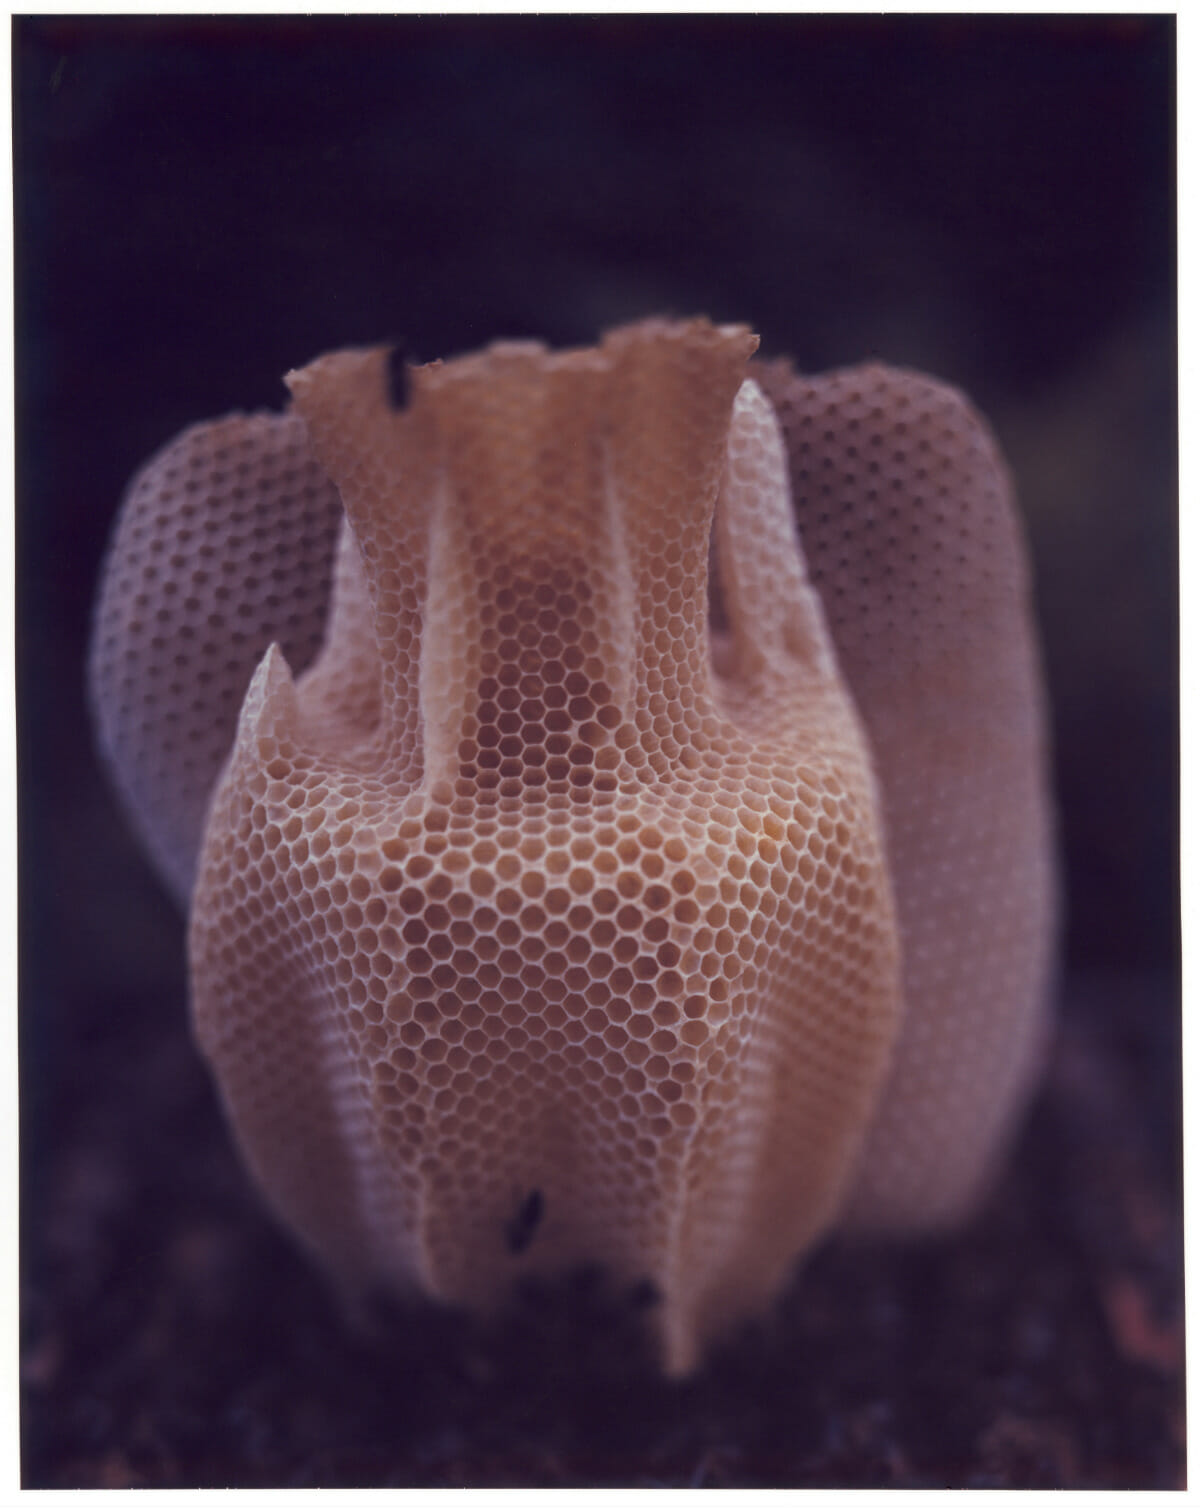 The Honeycomb Vase / Credit: Raoul Kramer